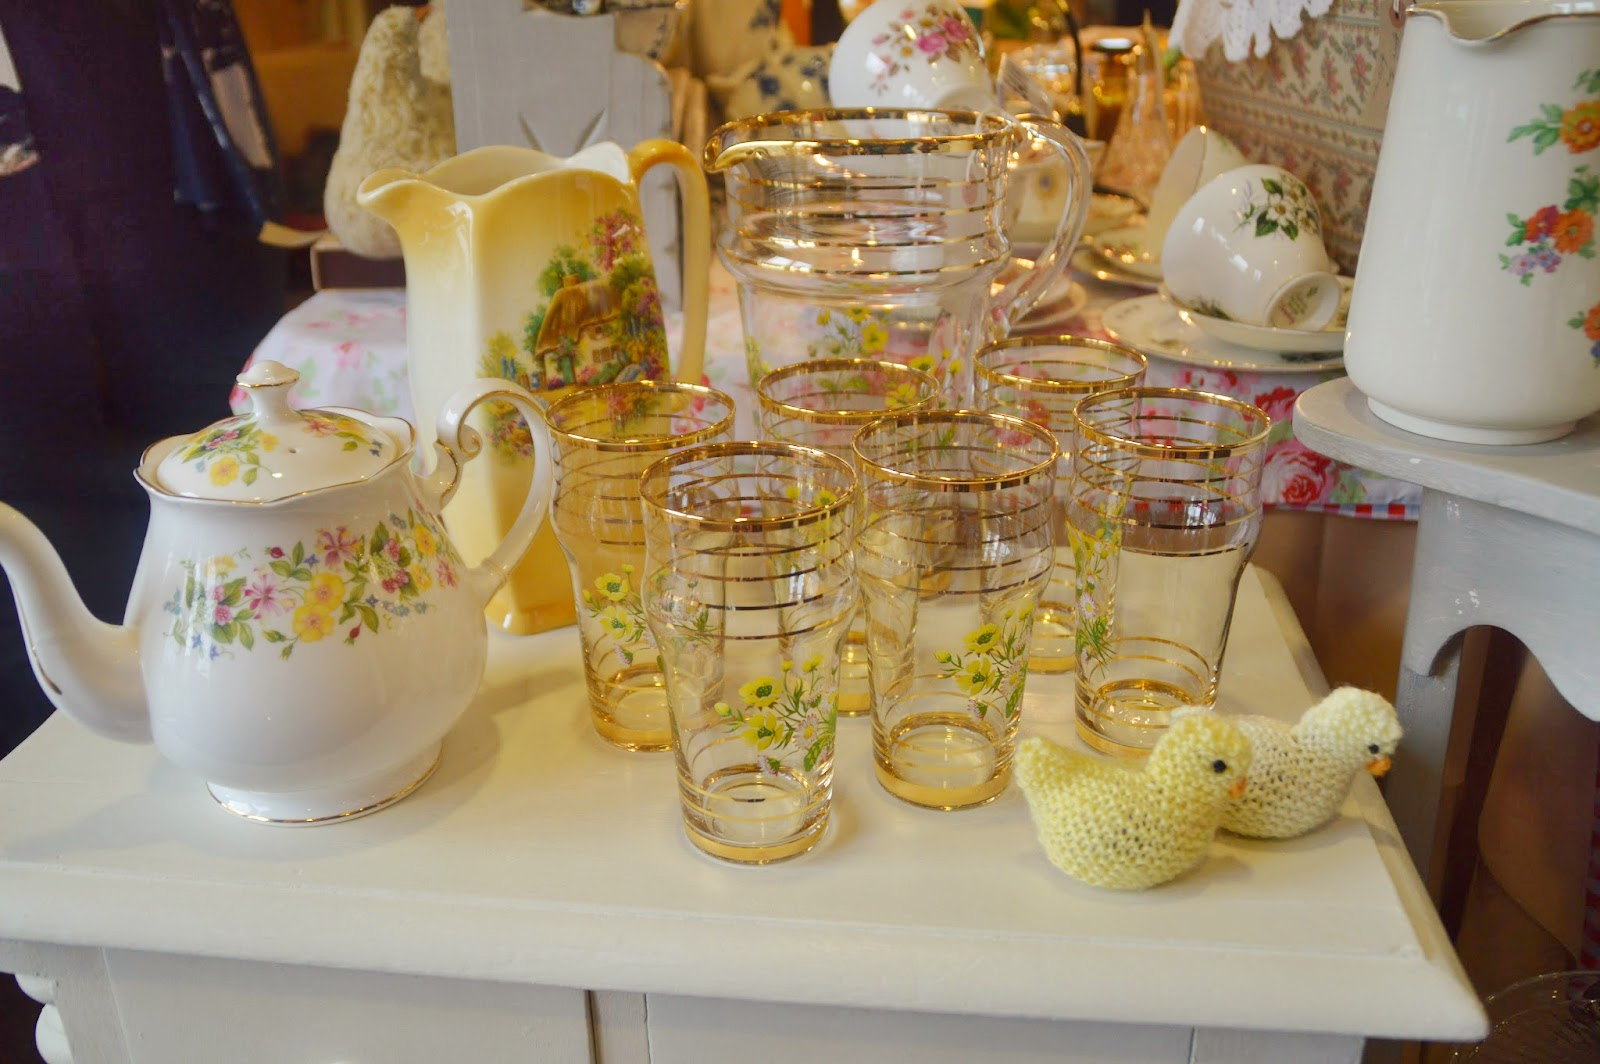 Narberth Vintage Home and Fashion Fayre 2015